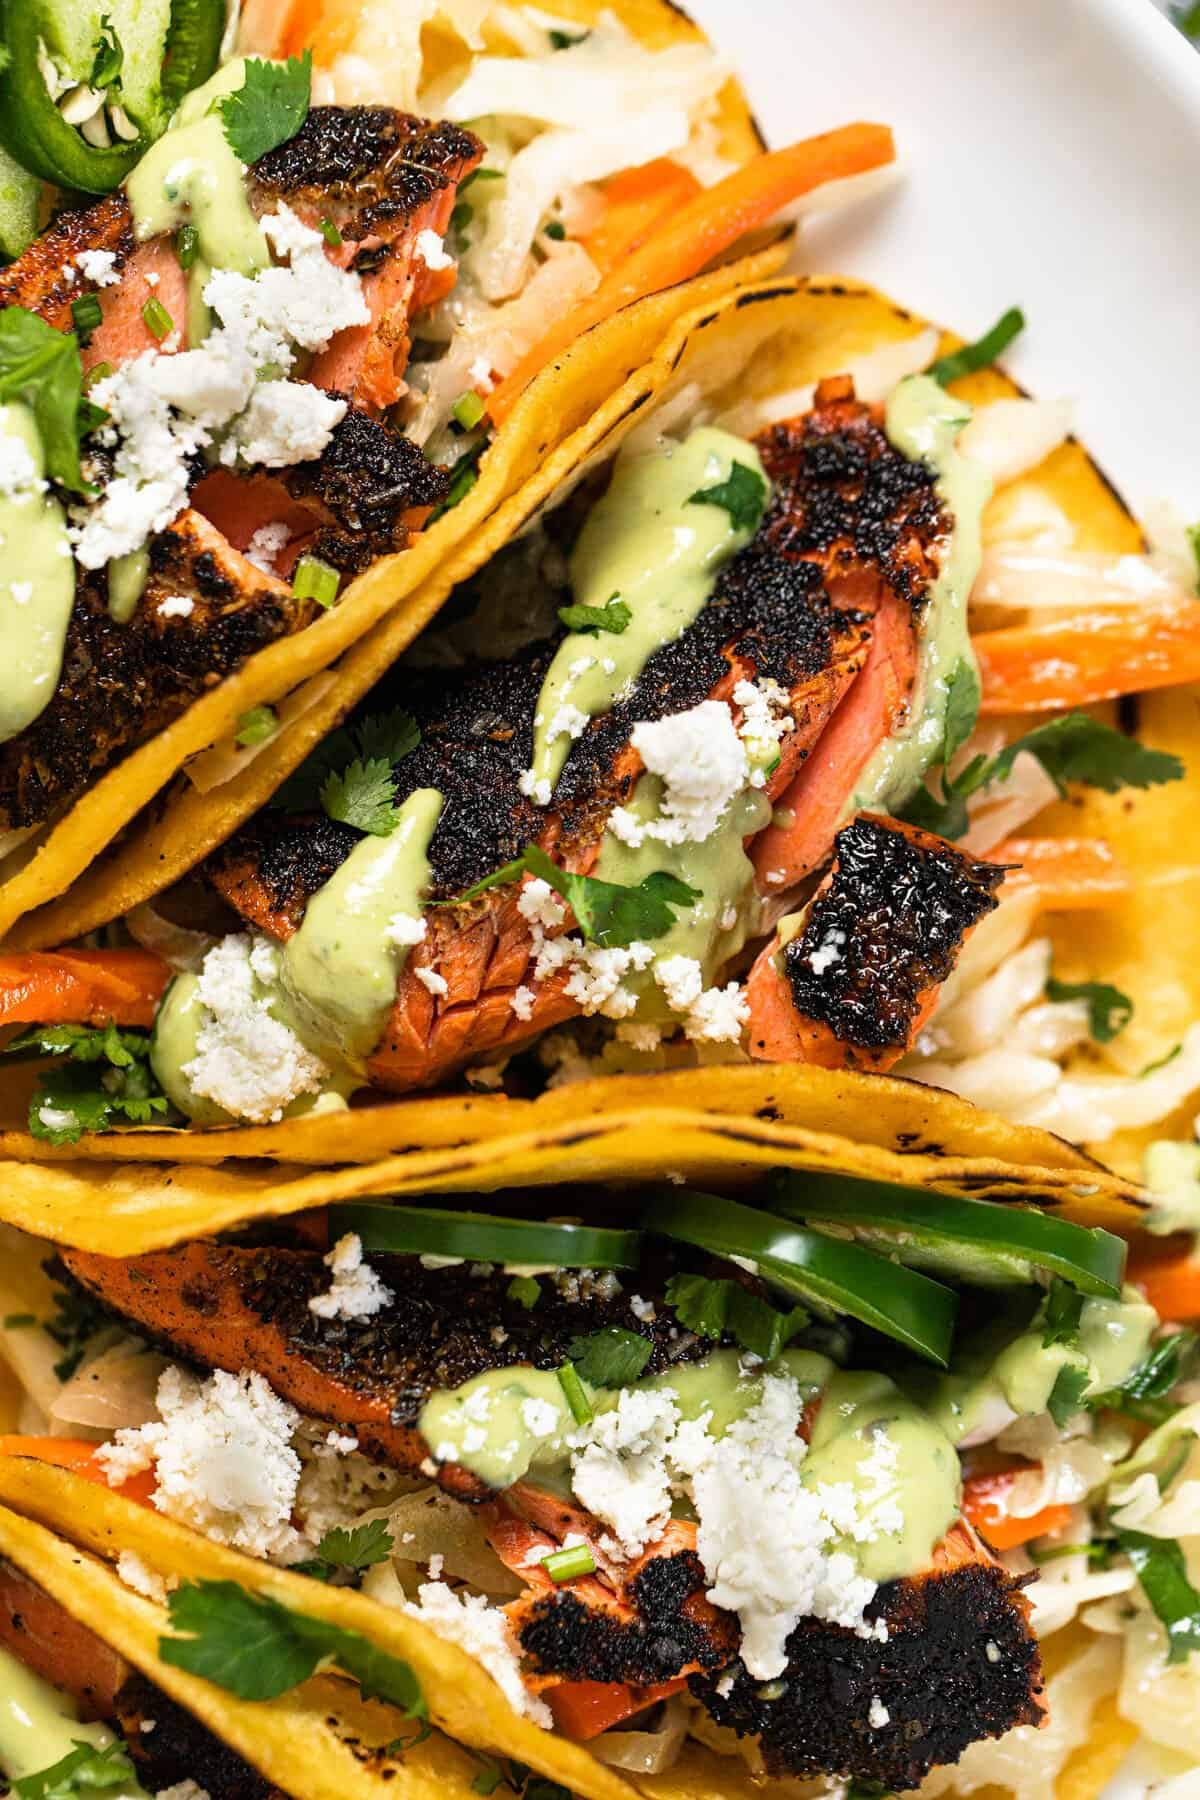 White platter filled with blackened salmon tacos garnished with cilantro